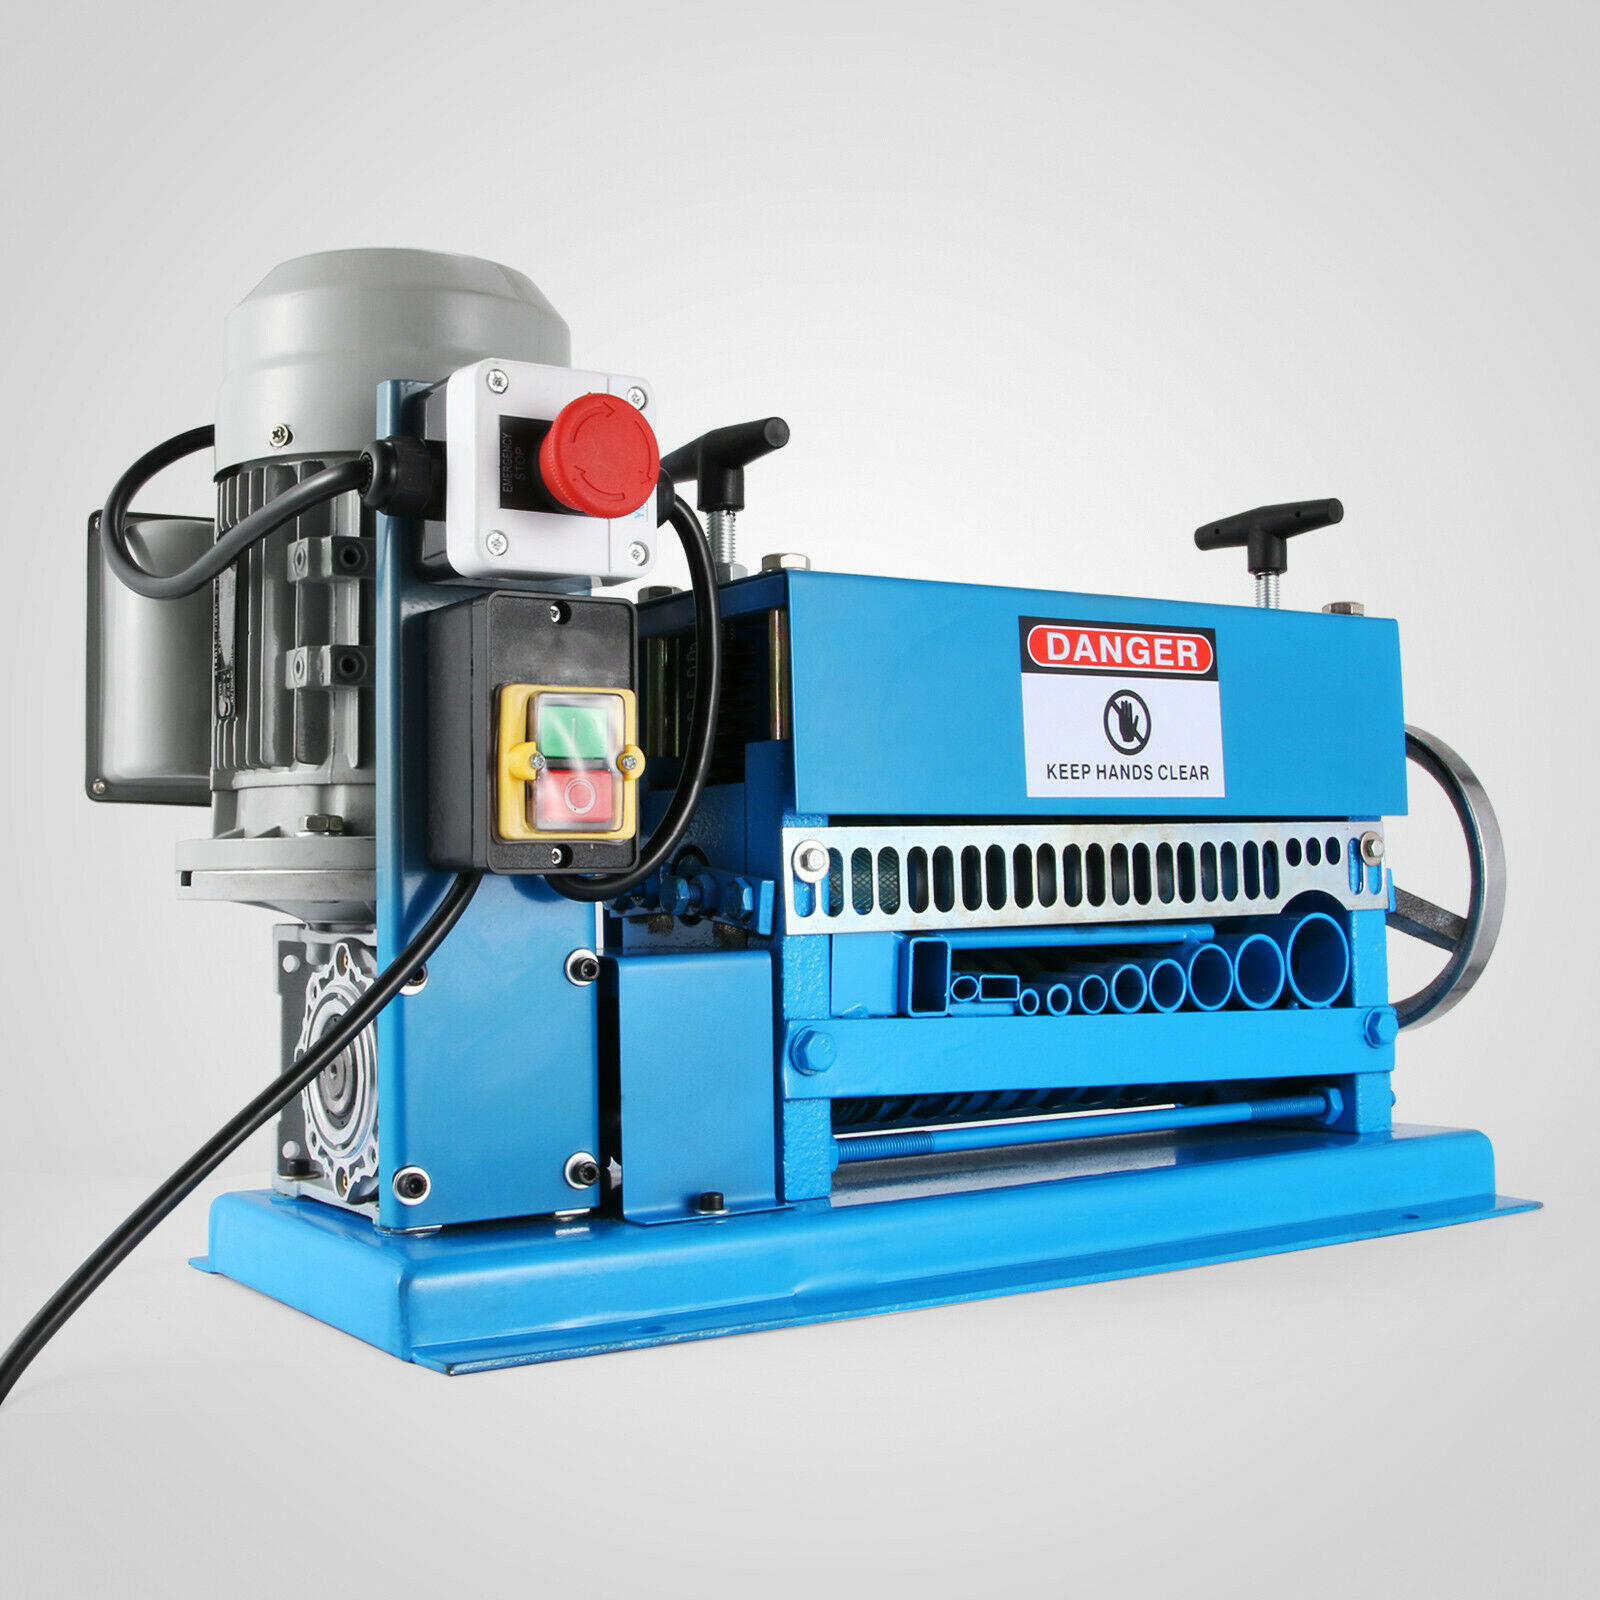 Cable Wire Stripping Machine 38Mm Cable Peeling Machine Wire Stripper Adjustable Springs Suitable Cables